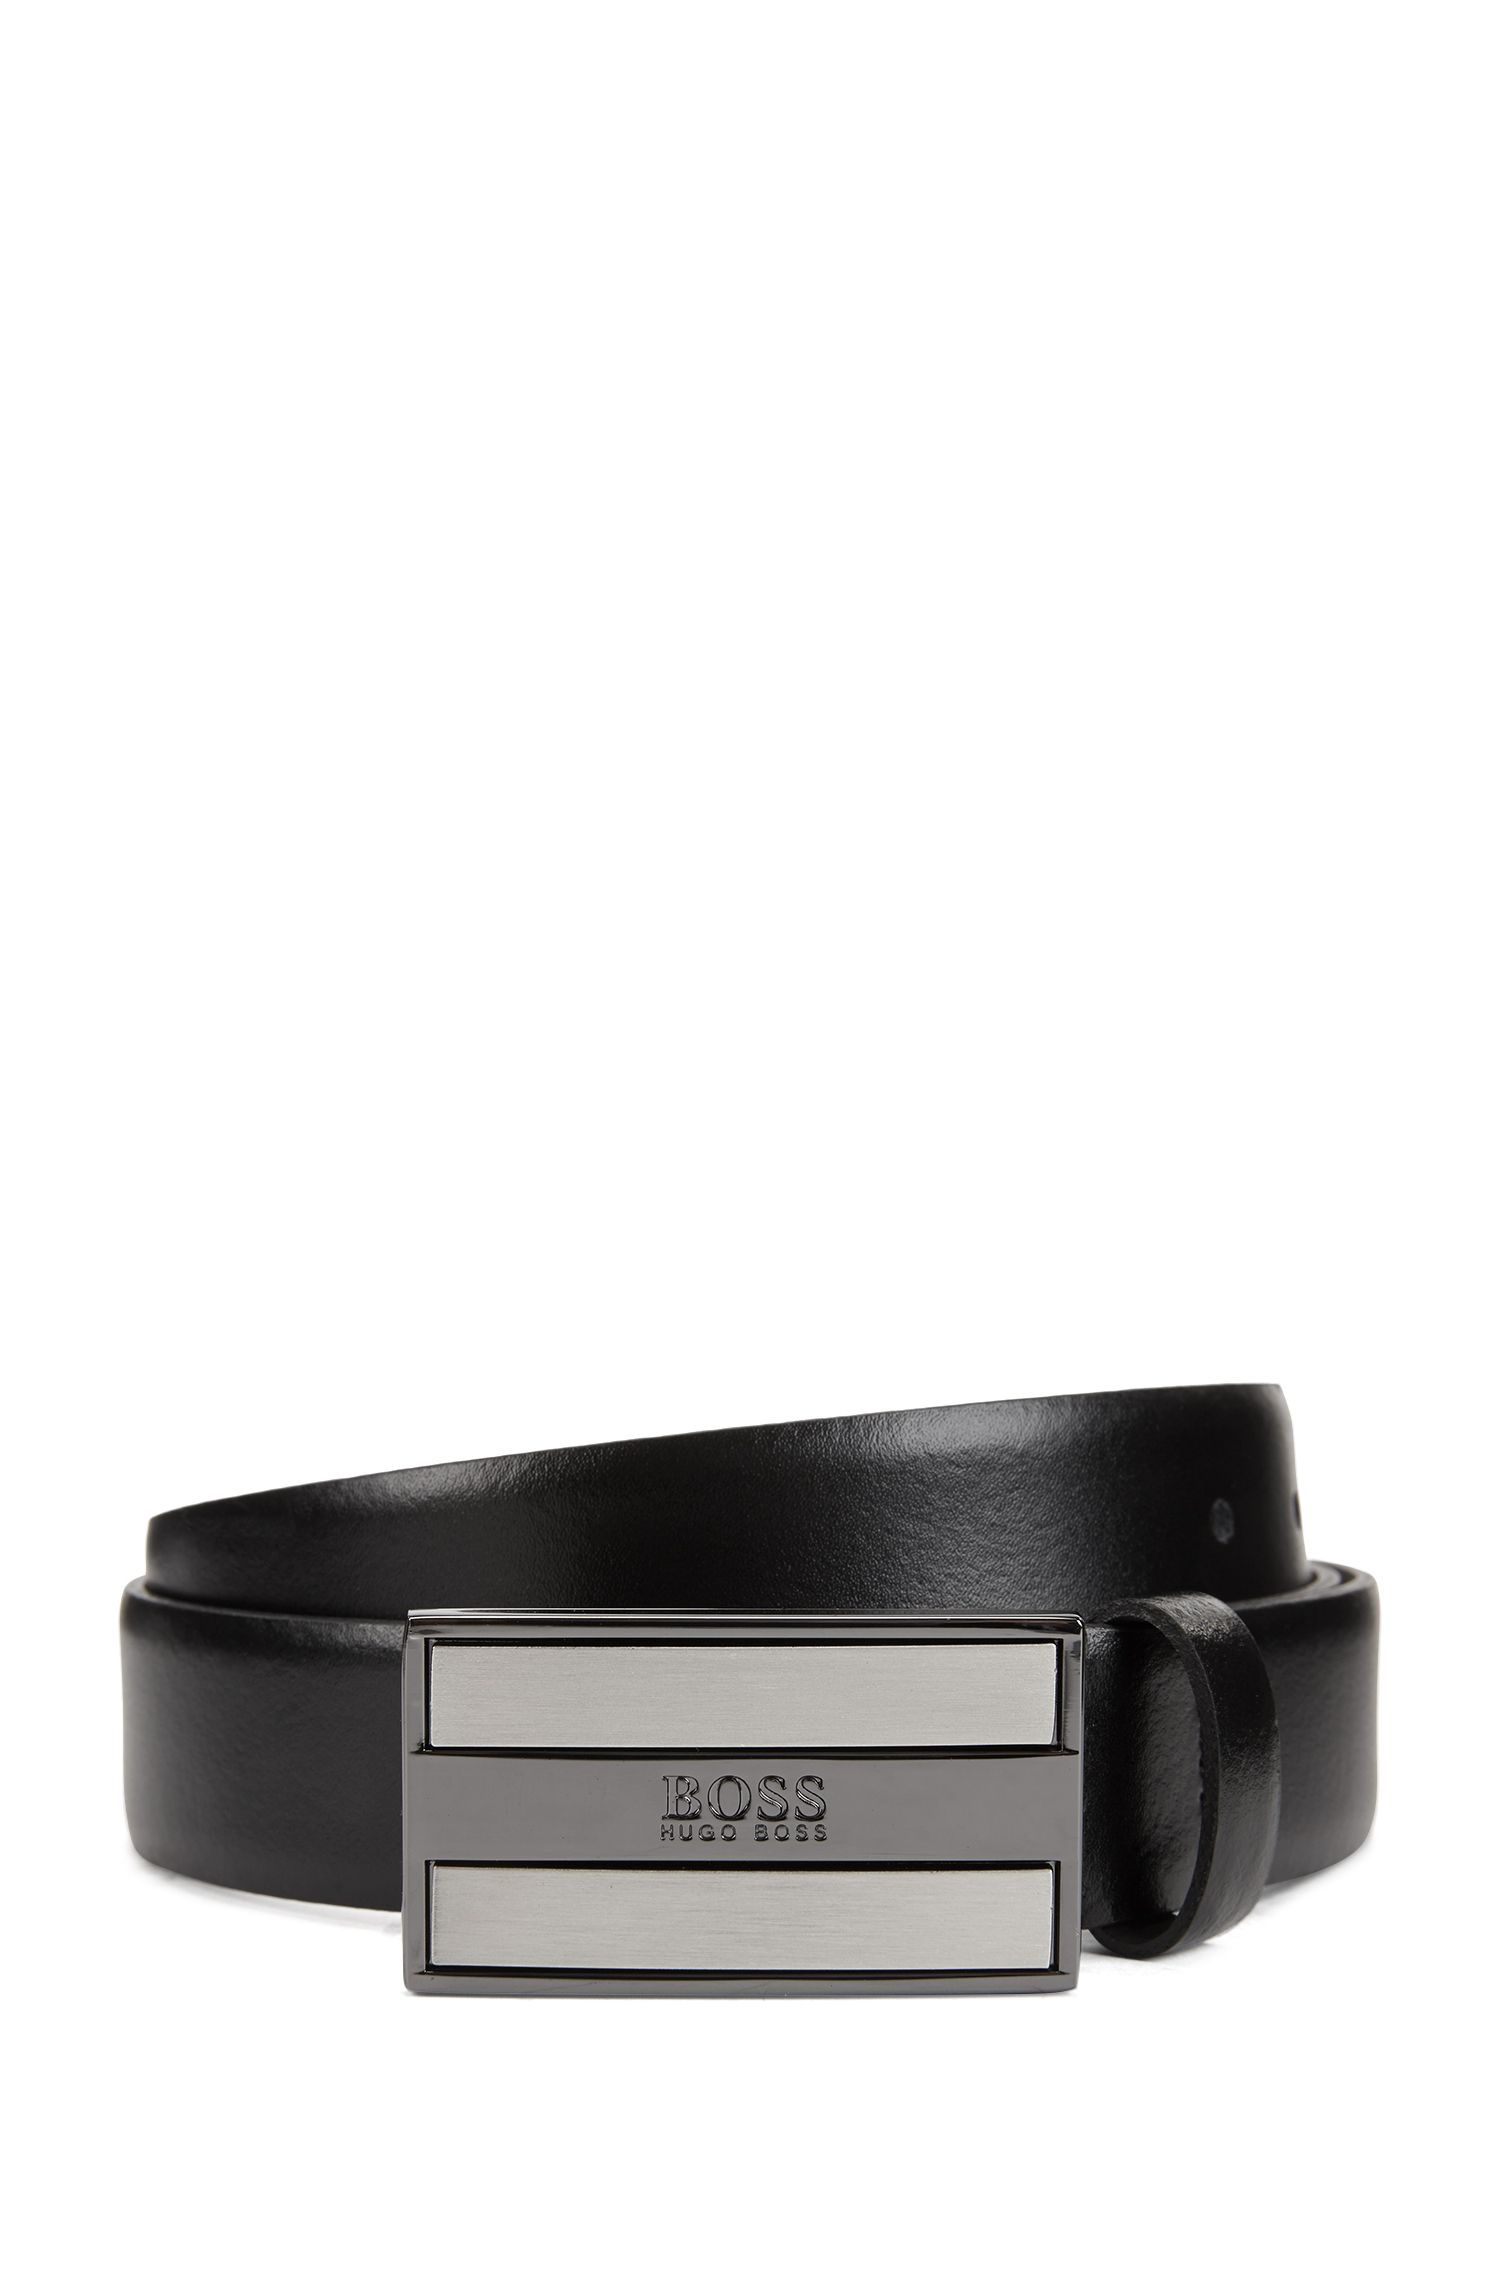 Smooth-leather belt with logo-engraved plaque buckle